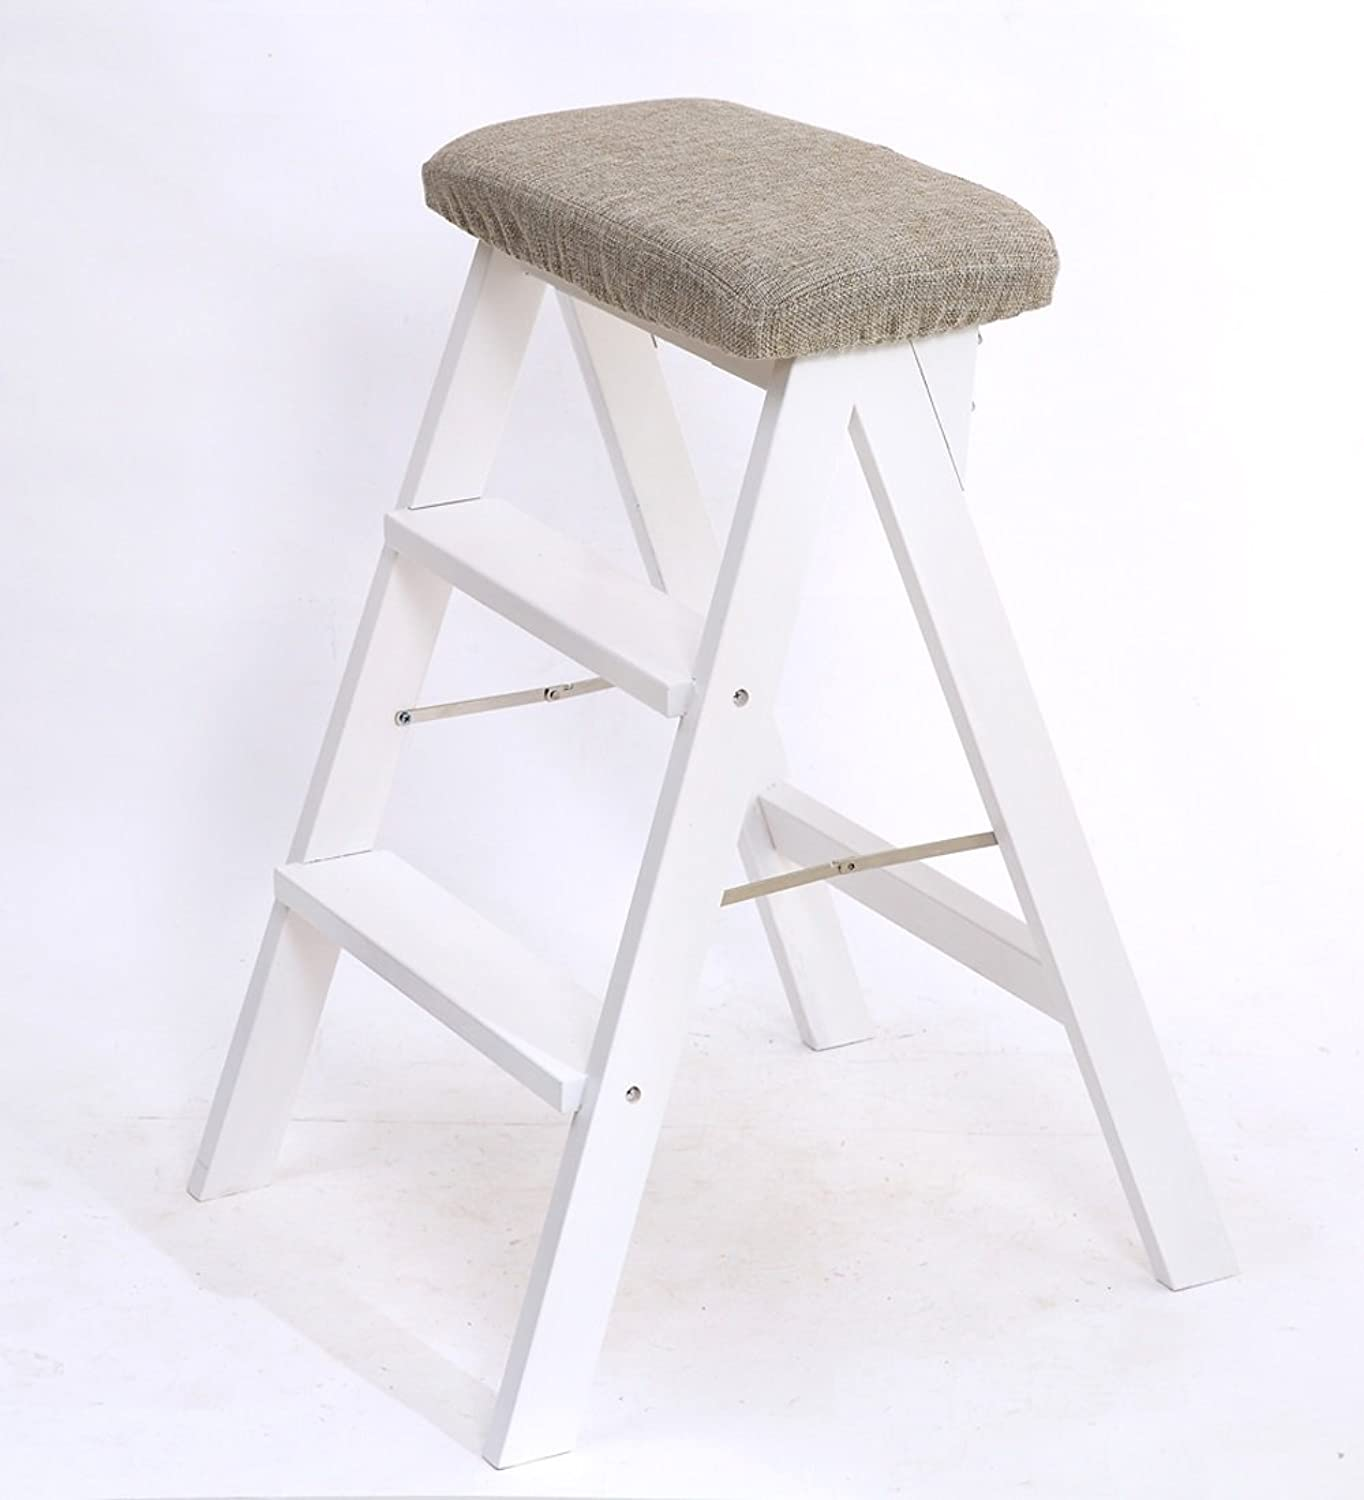 CAIJUN Solid Wood Folding Step Ladder Kitchen Portable Household White High Stool, High 63cm (color   1 )